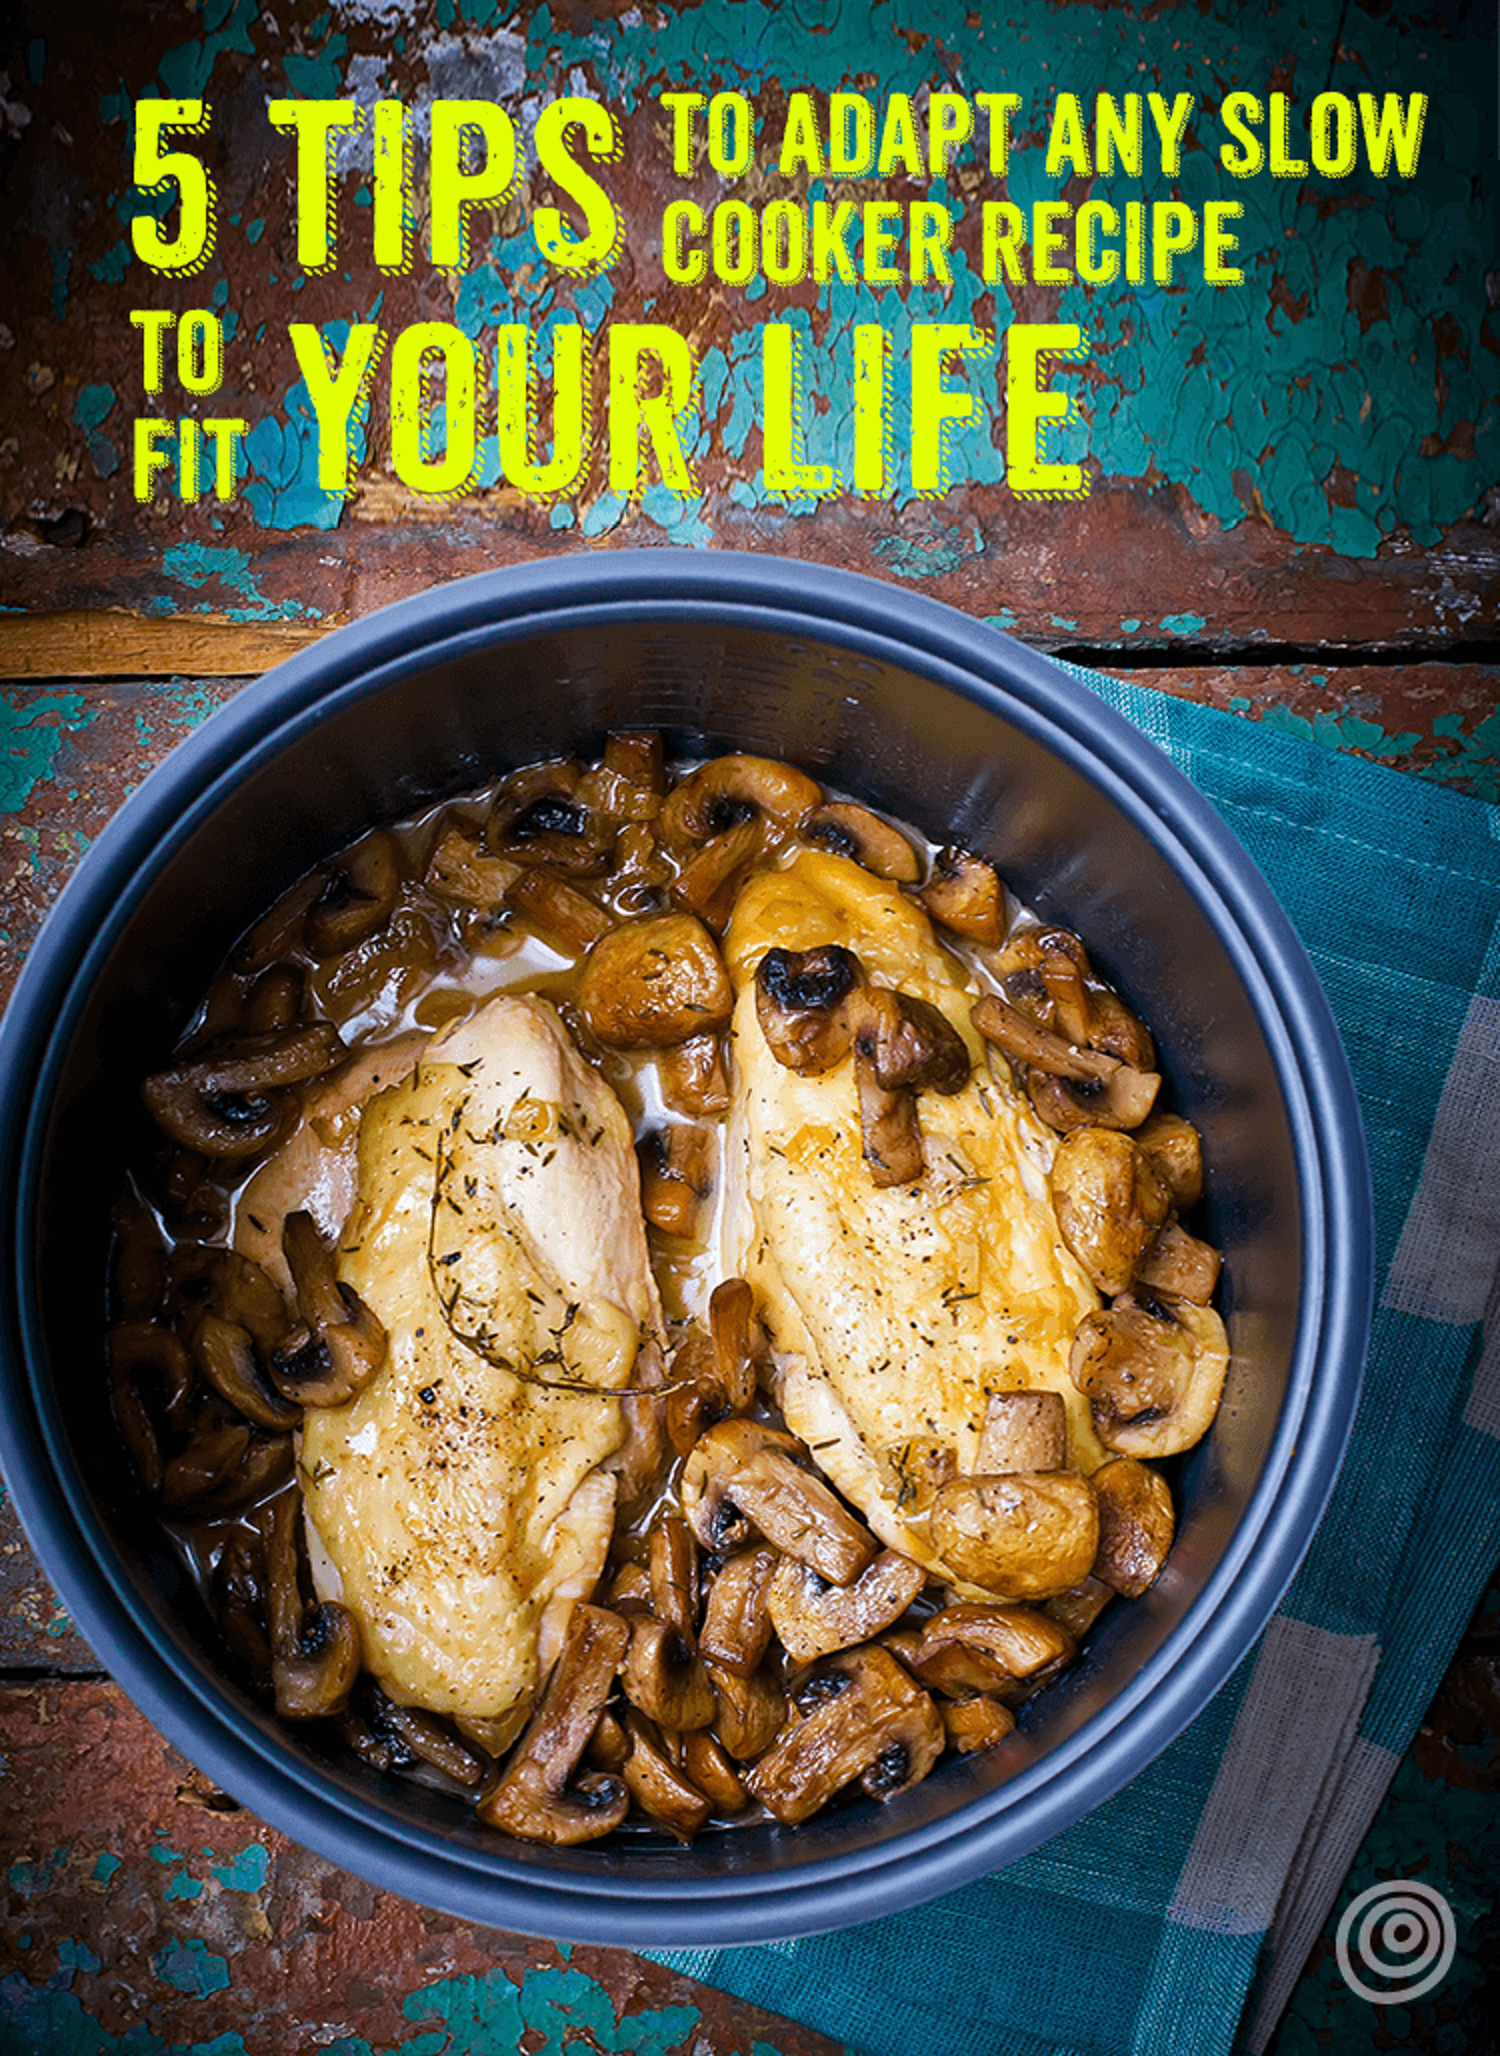 5 Tips for Adapting Slow-Cooker Recipes to Fit Your Life — Slow-Cooker Savvy from Stephanie O'Dea